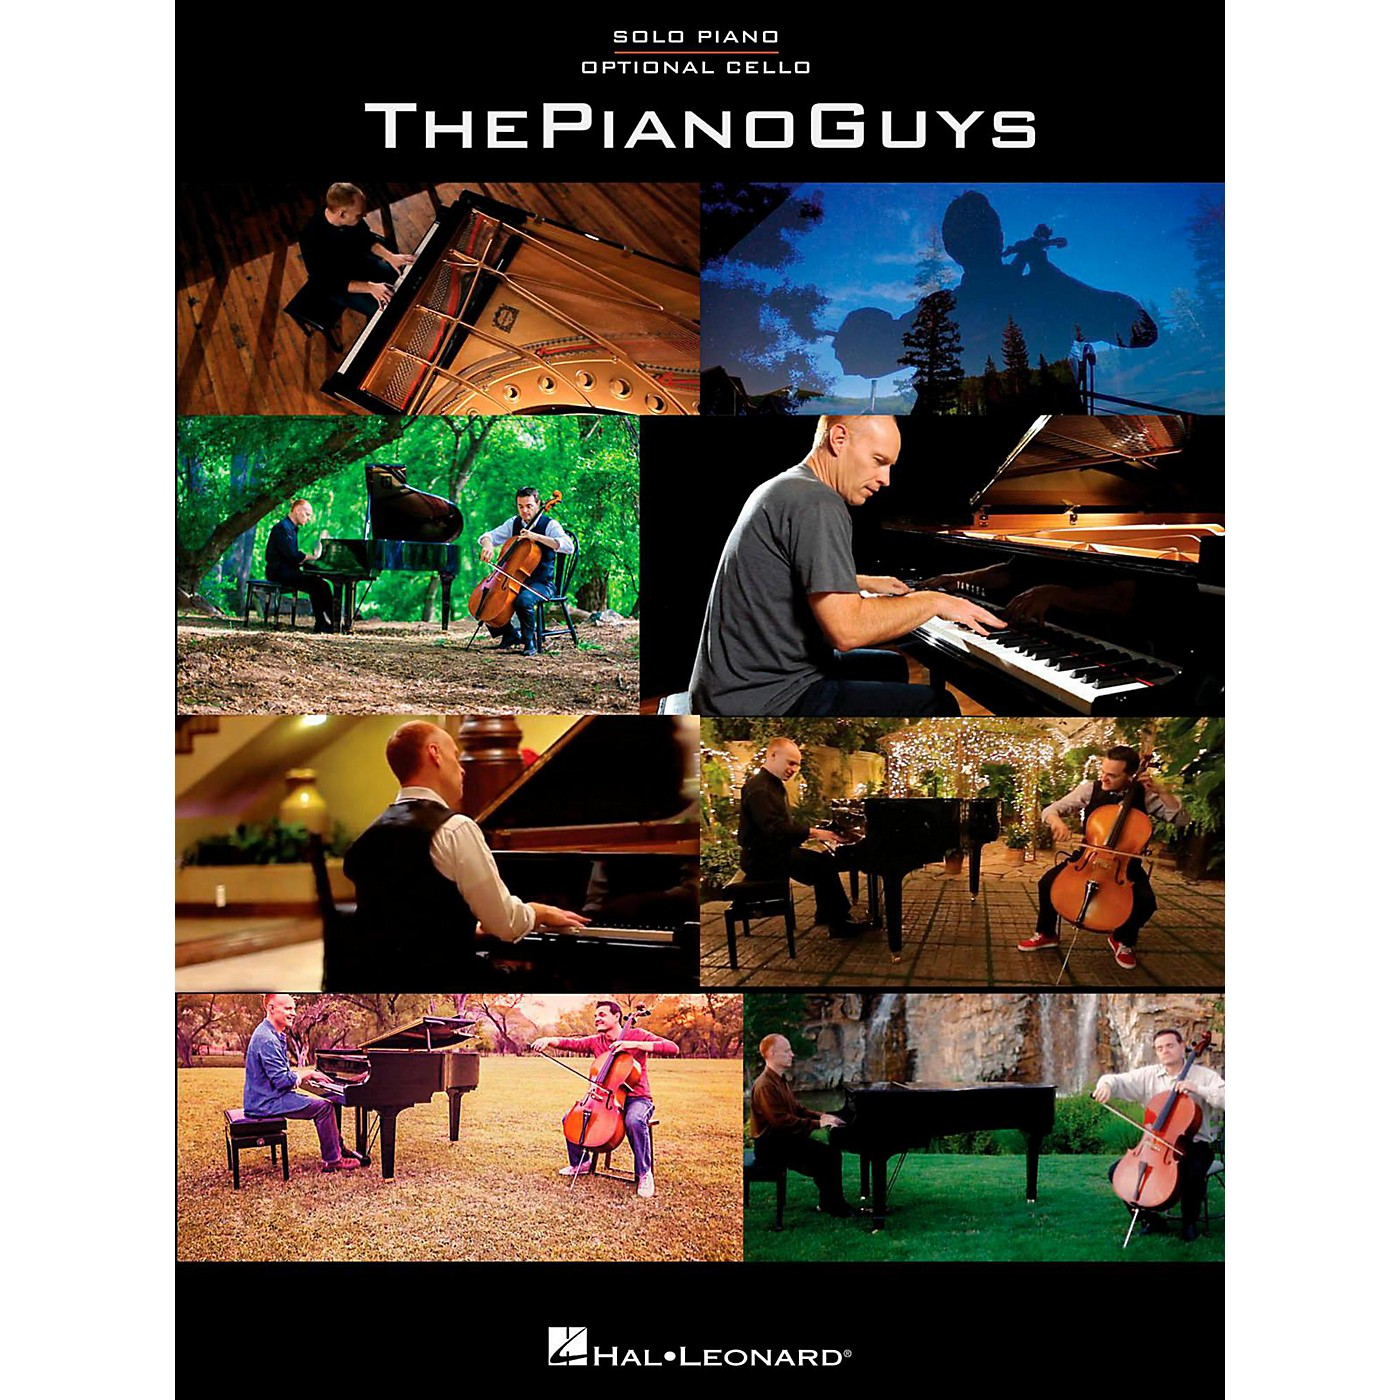 Hal Leonard The Piano Guys for Solo Piano with Optional Cello thumbnail